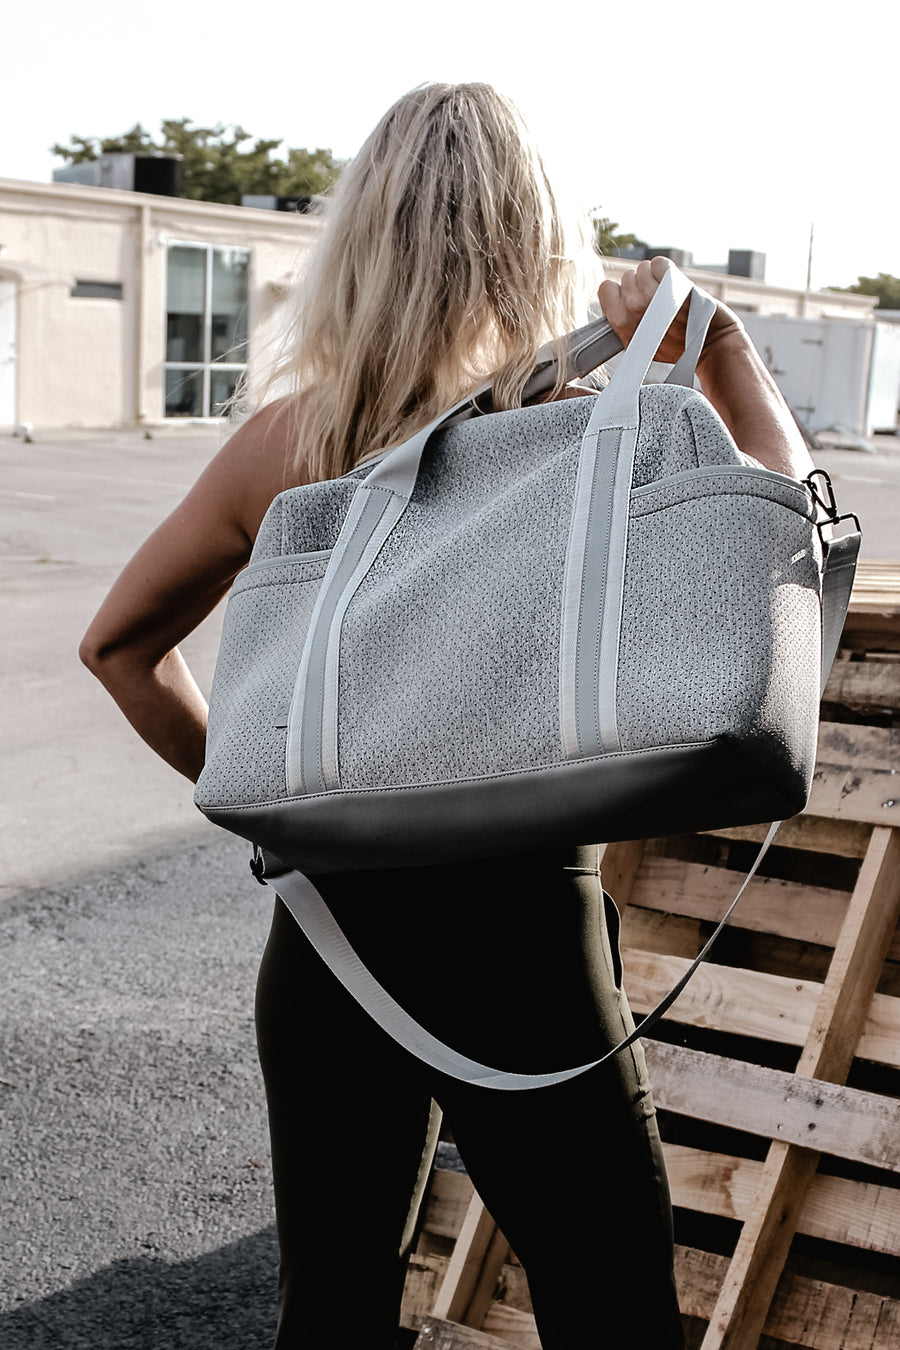 Callahan light gray perforated neoprene duffel bag on model.